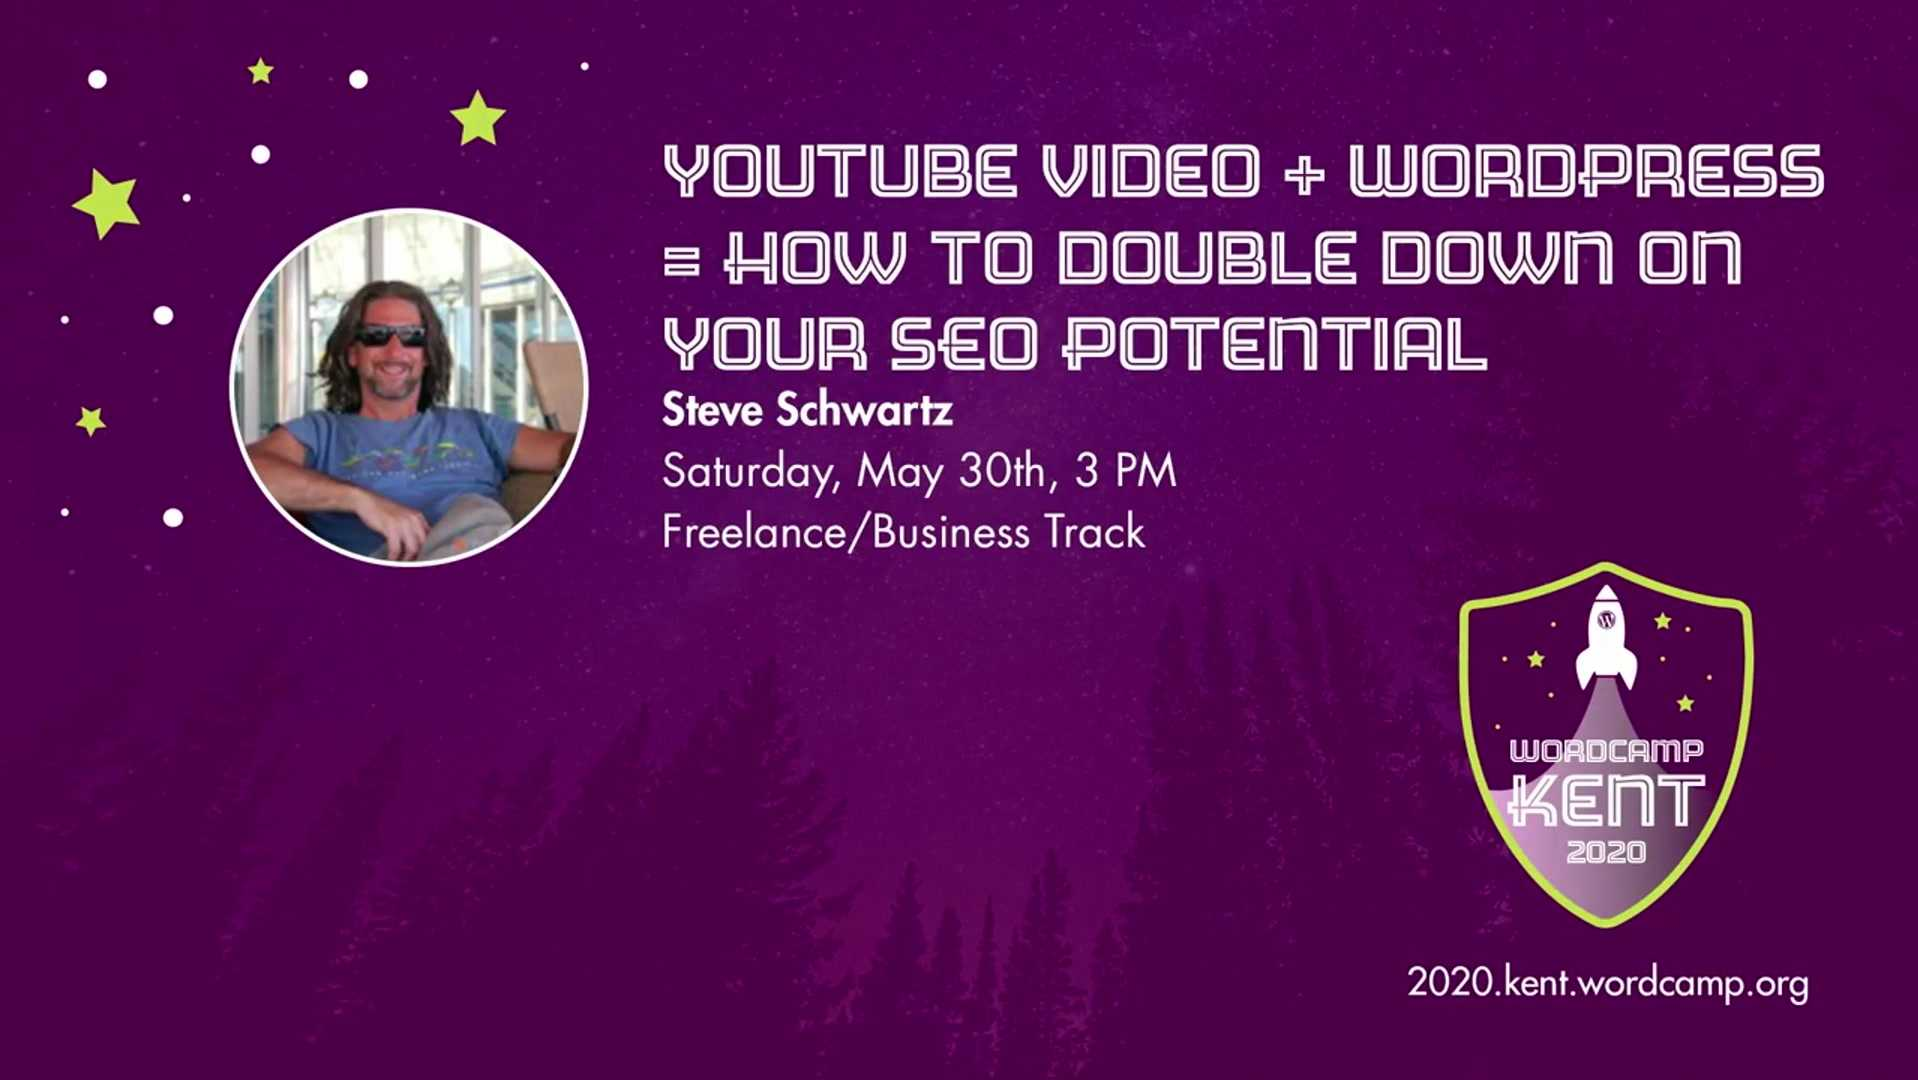 Steve Schwartz: YouTube Video with WordPress: Double Down on Your SEO Potential